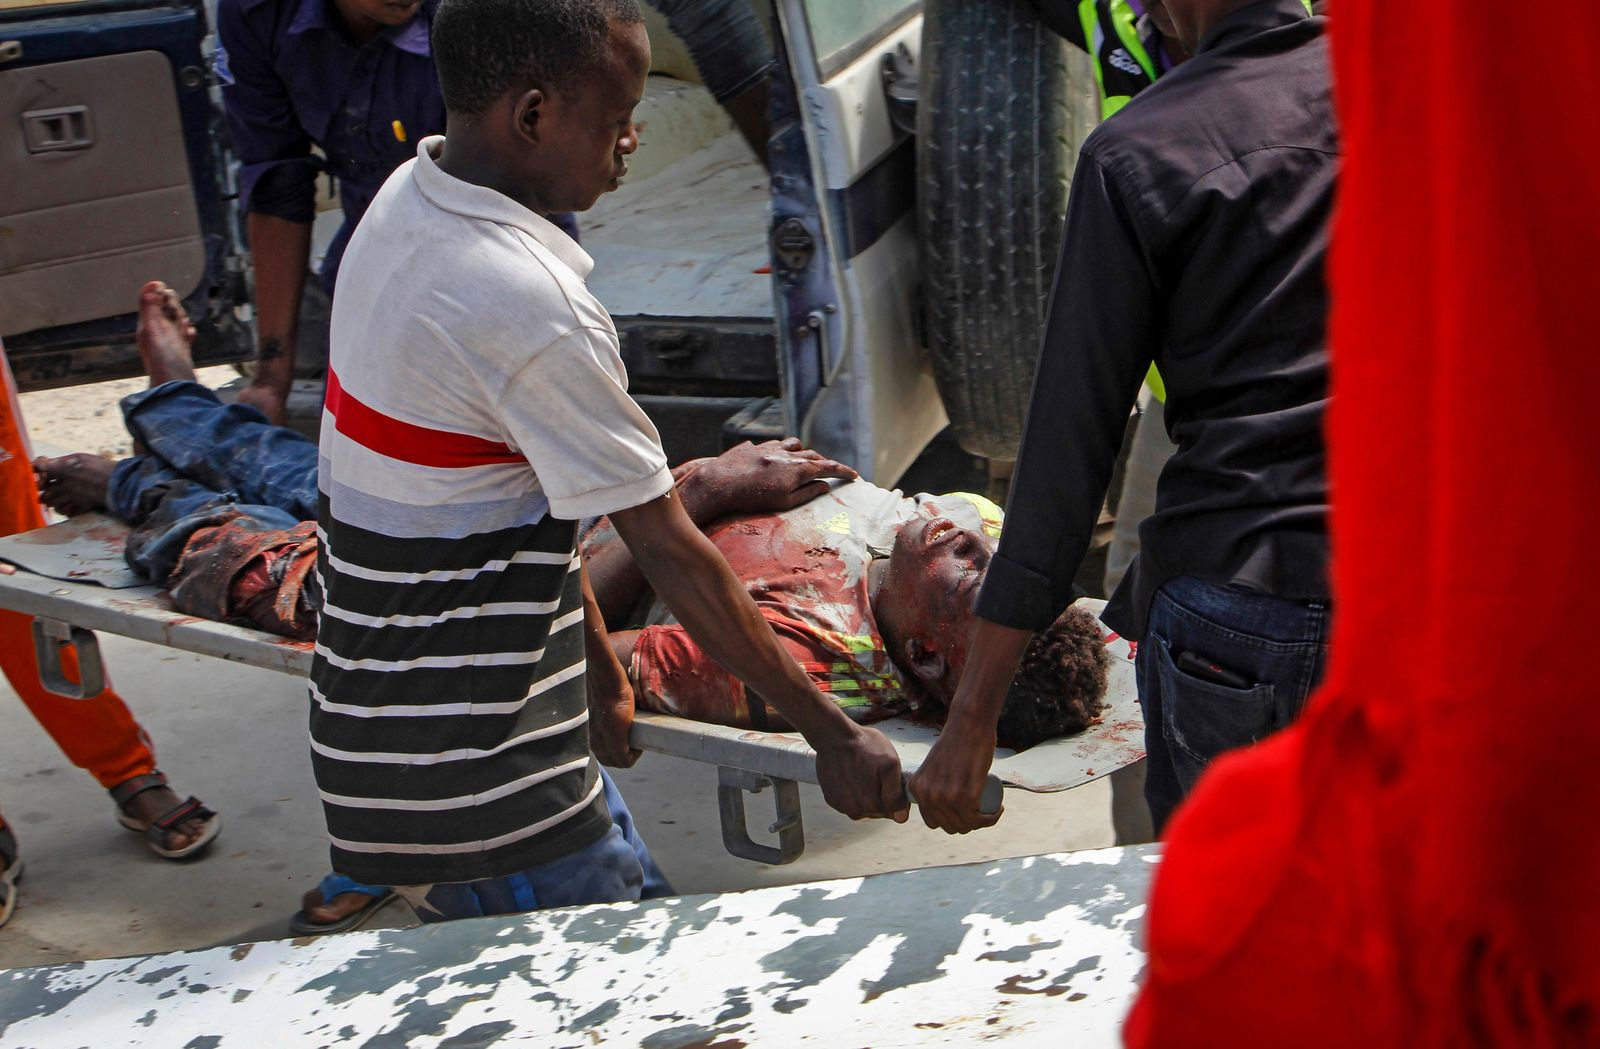 Medical workers help a man who was wounded in a bomb attack, at a hospital in the capital Mogadishu, Somalia, Saturday, June 15, 2019. (AP Photo/Farah Abdi Warsameh)